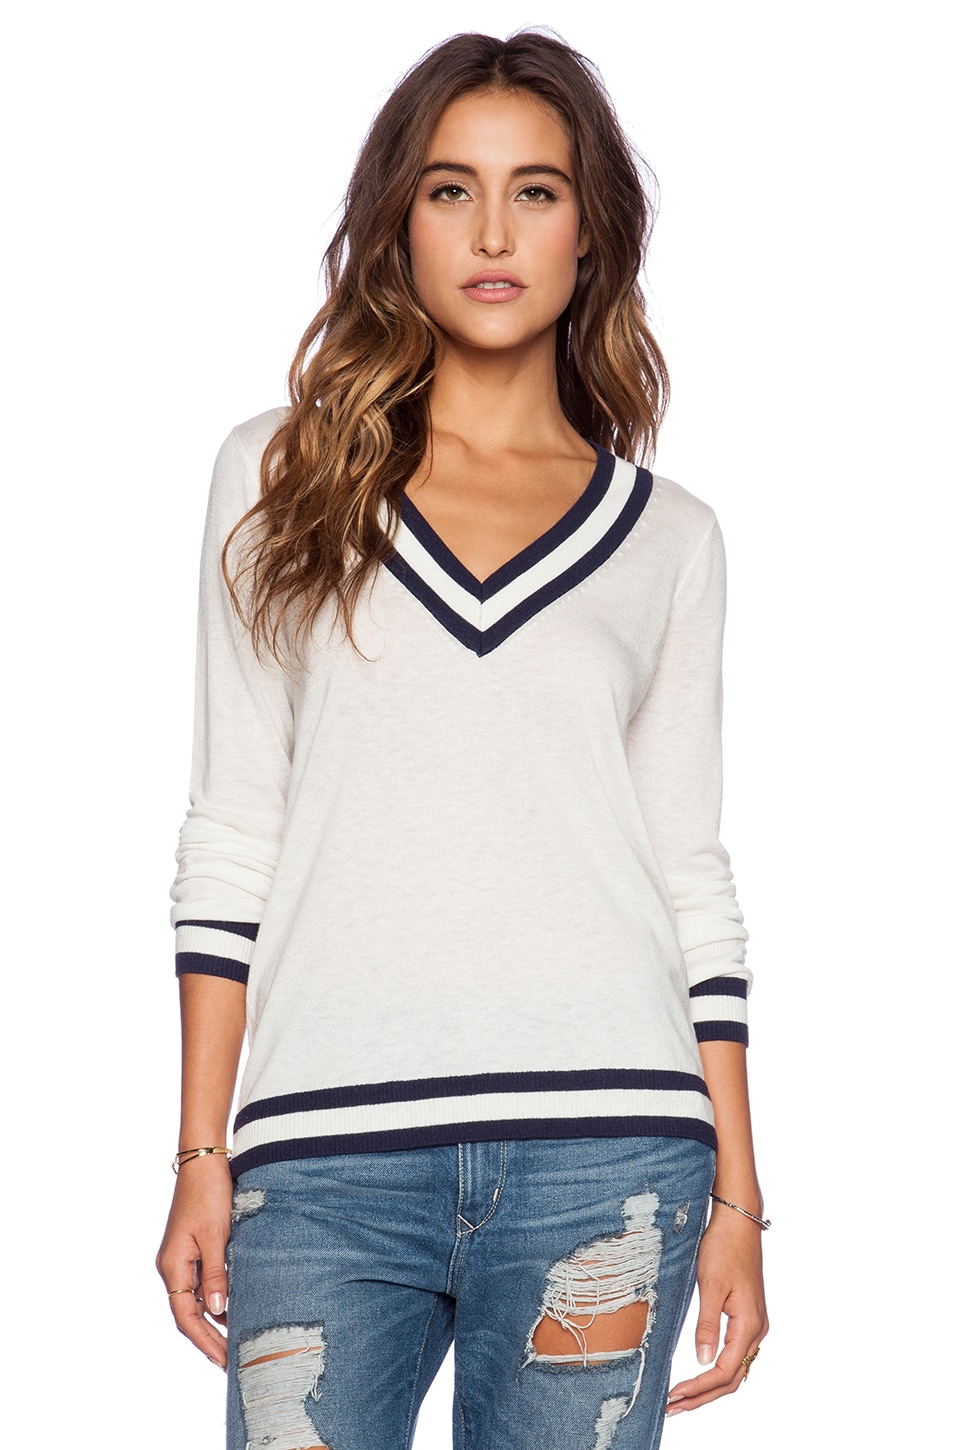 C&C California V Neck Tipped Sweater in White